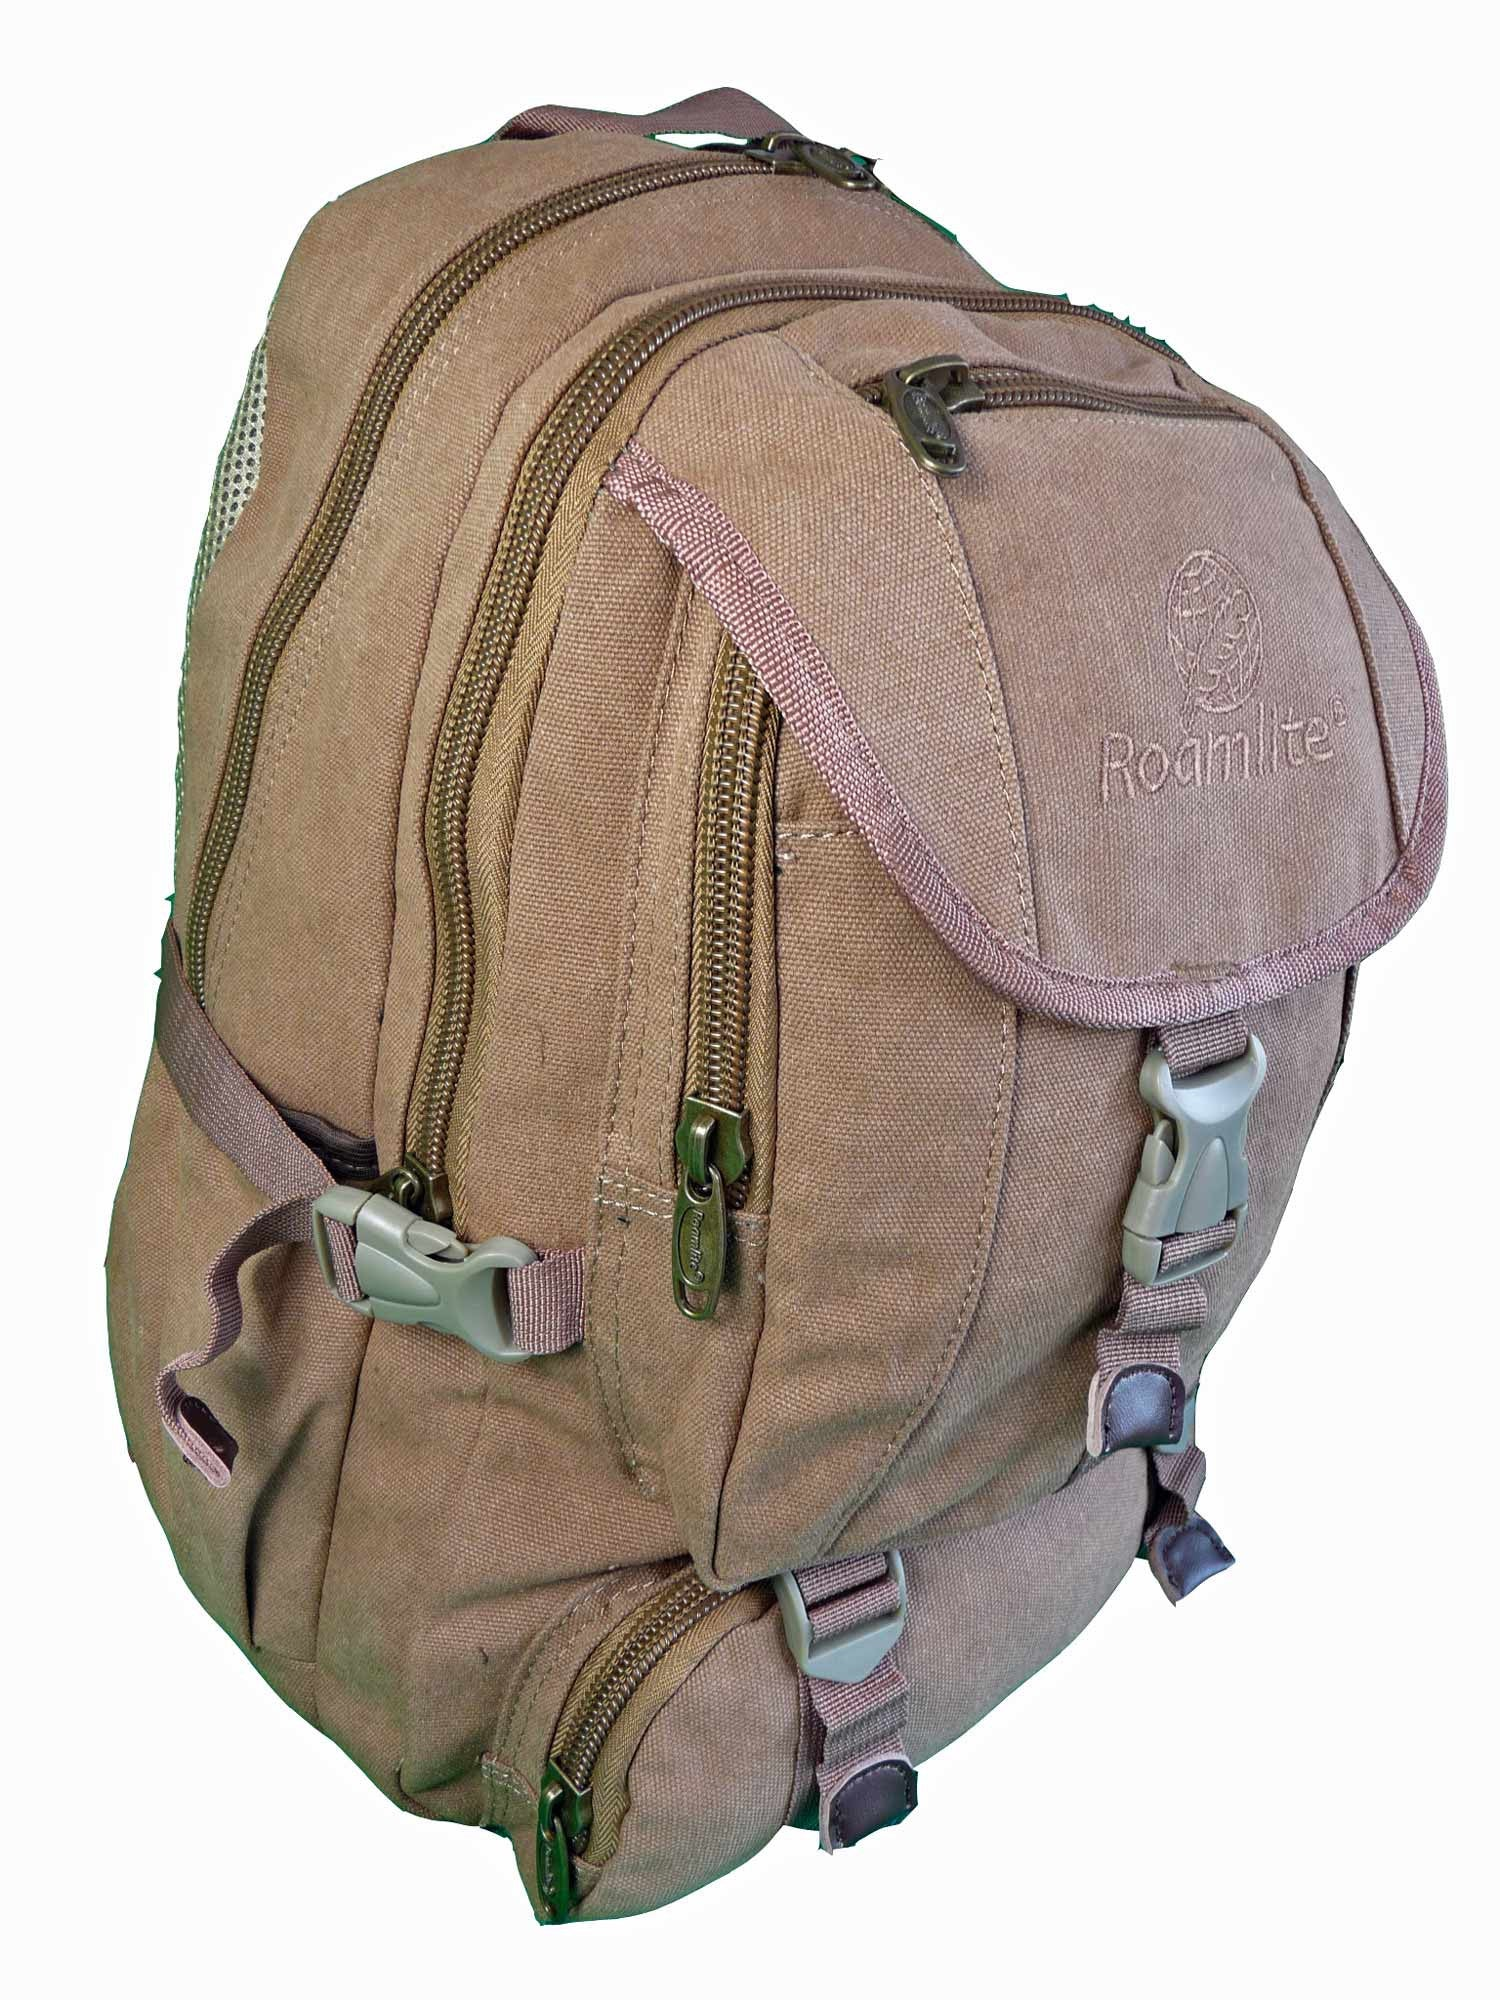 MacBook Air Backpack Rucksack Bag RL25B r side view